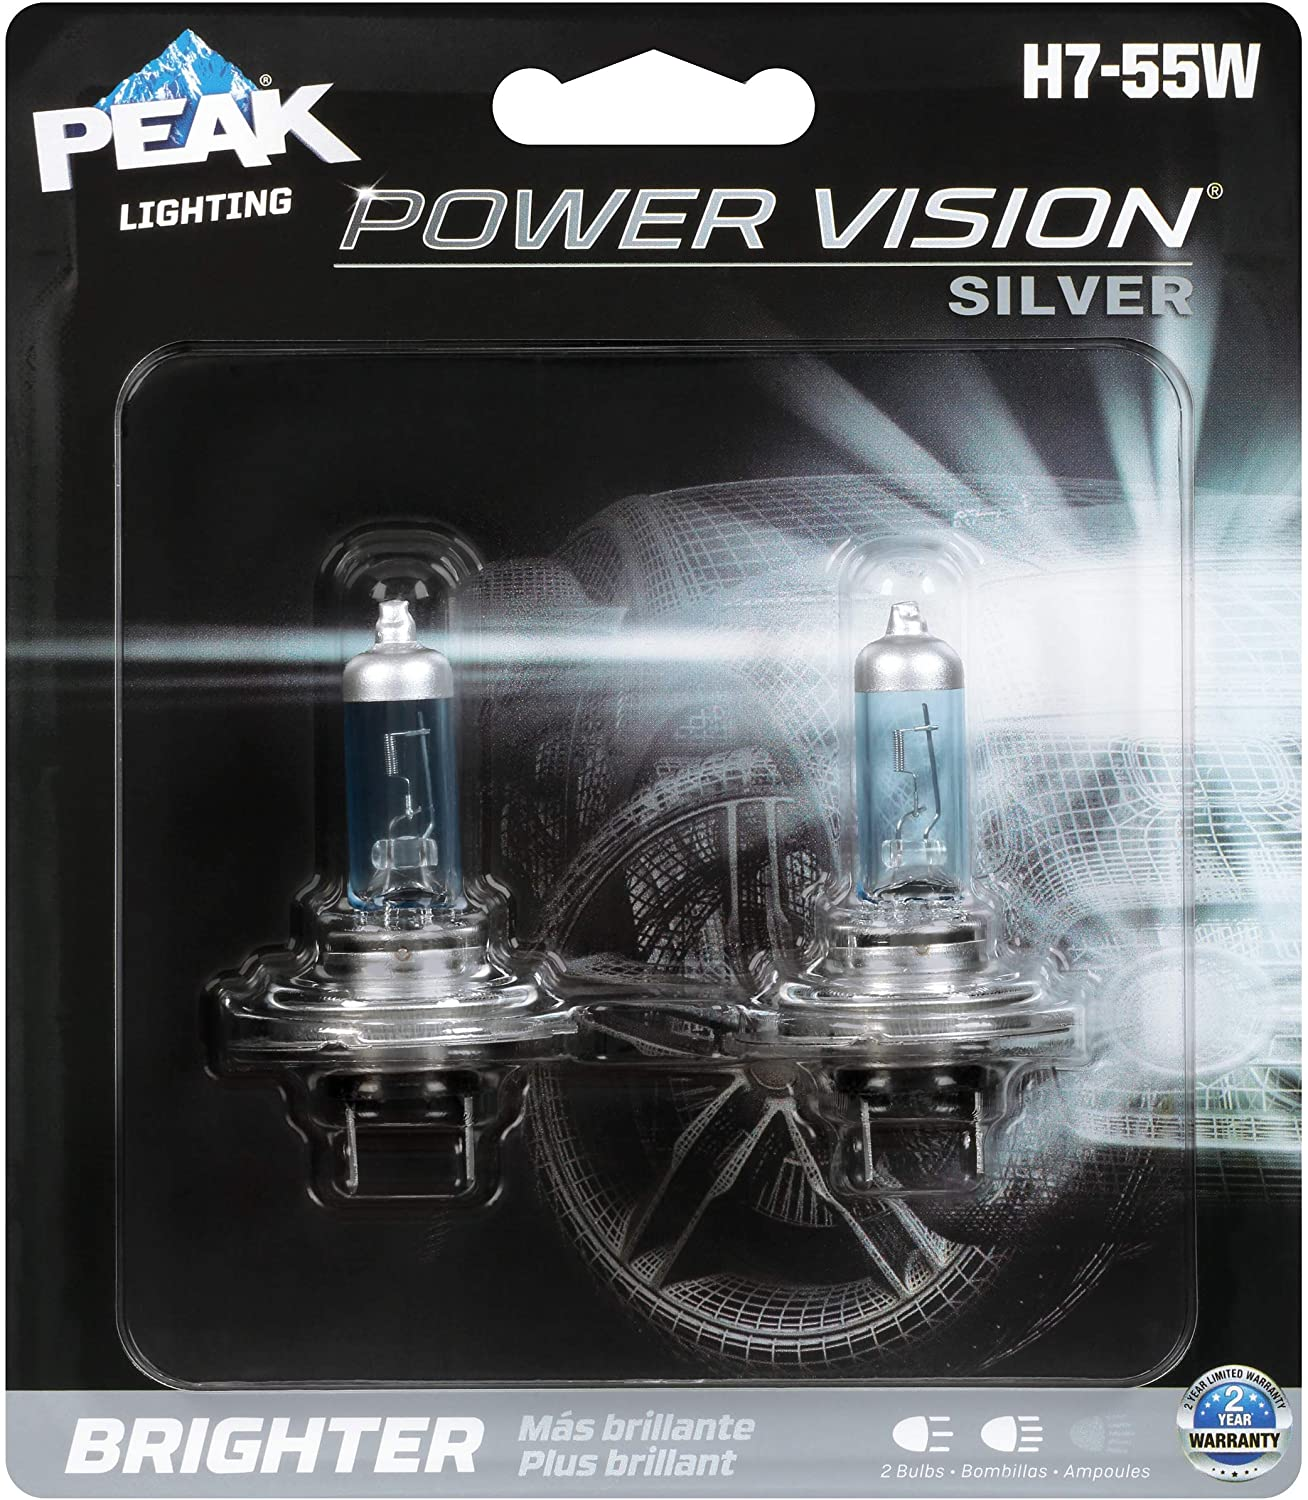 PEAK Power Vision Silver Automotive Performance Headlamp, H7 55W, 2 Pack